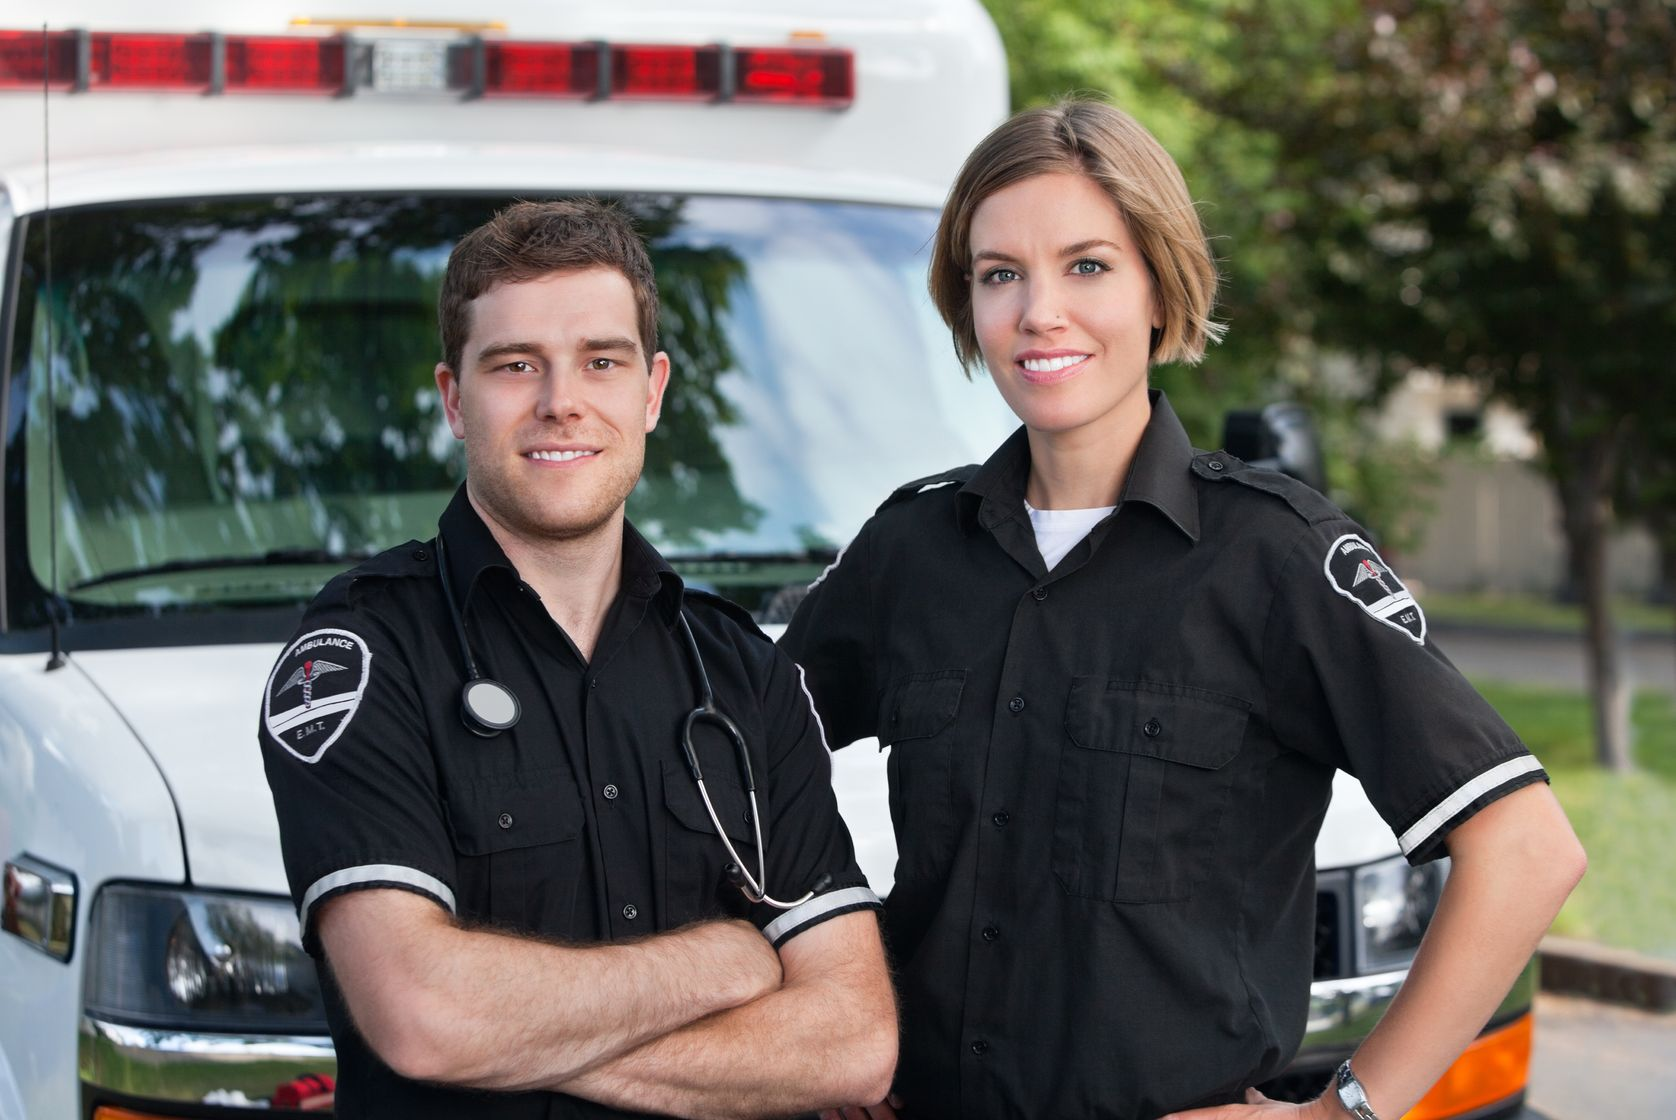 Where Can I Work as an EMT?